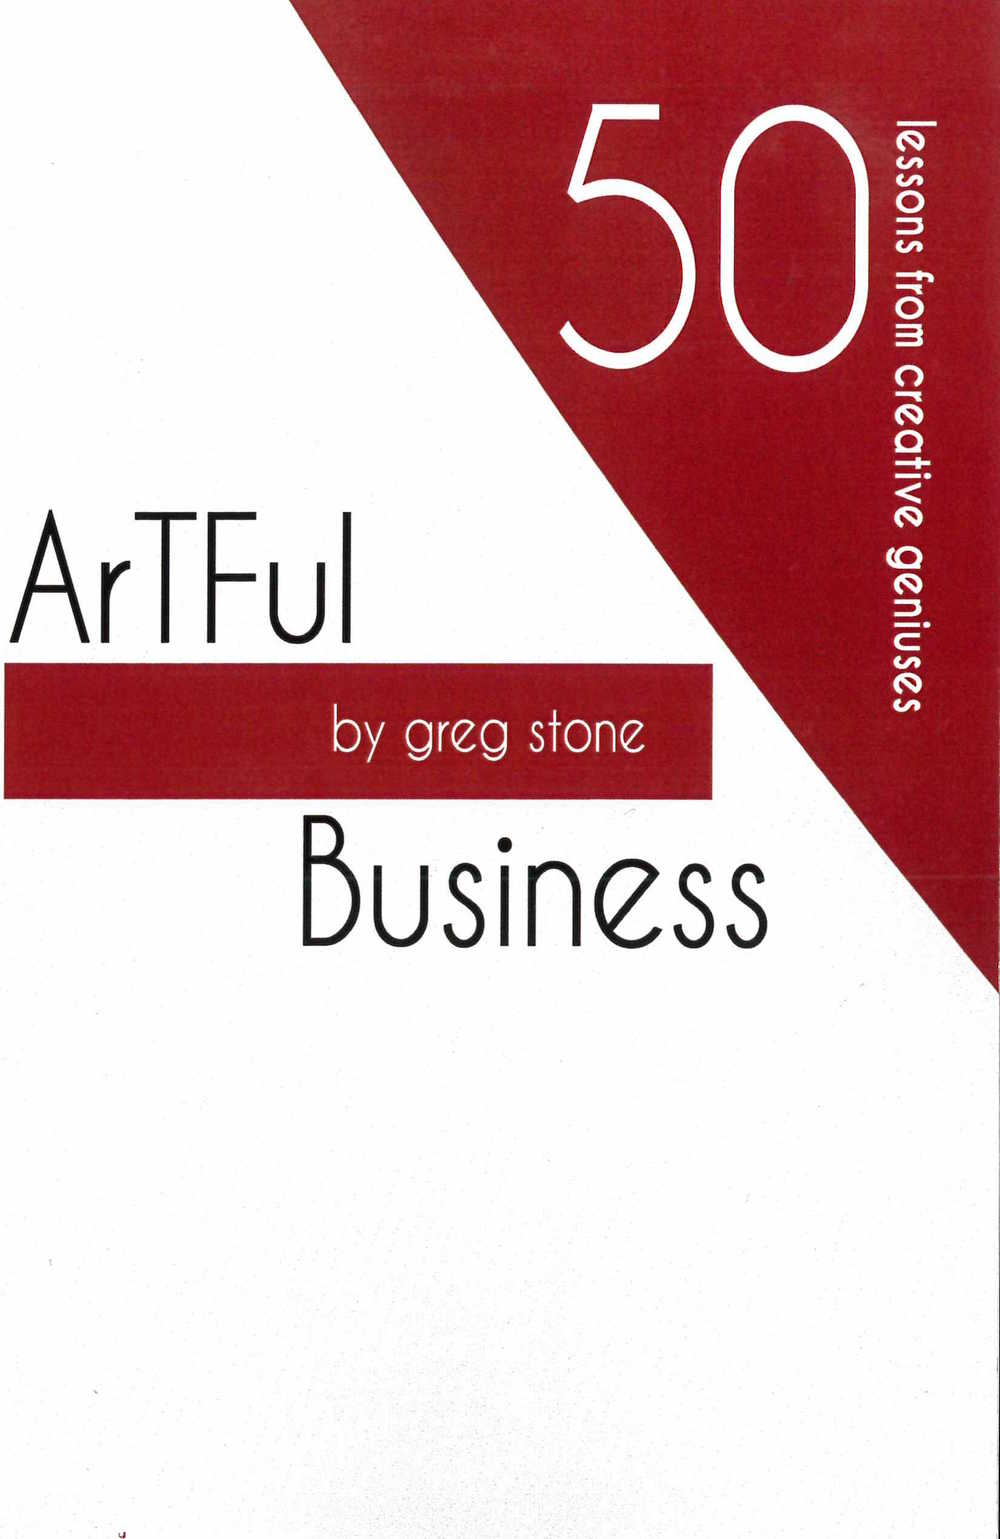 artful-business_cover.jpg